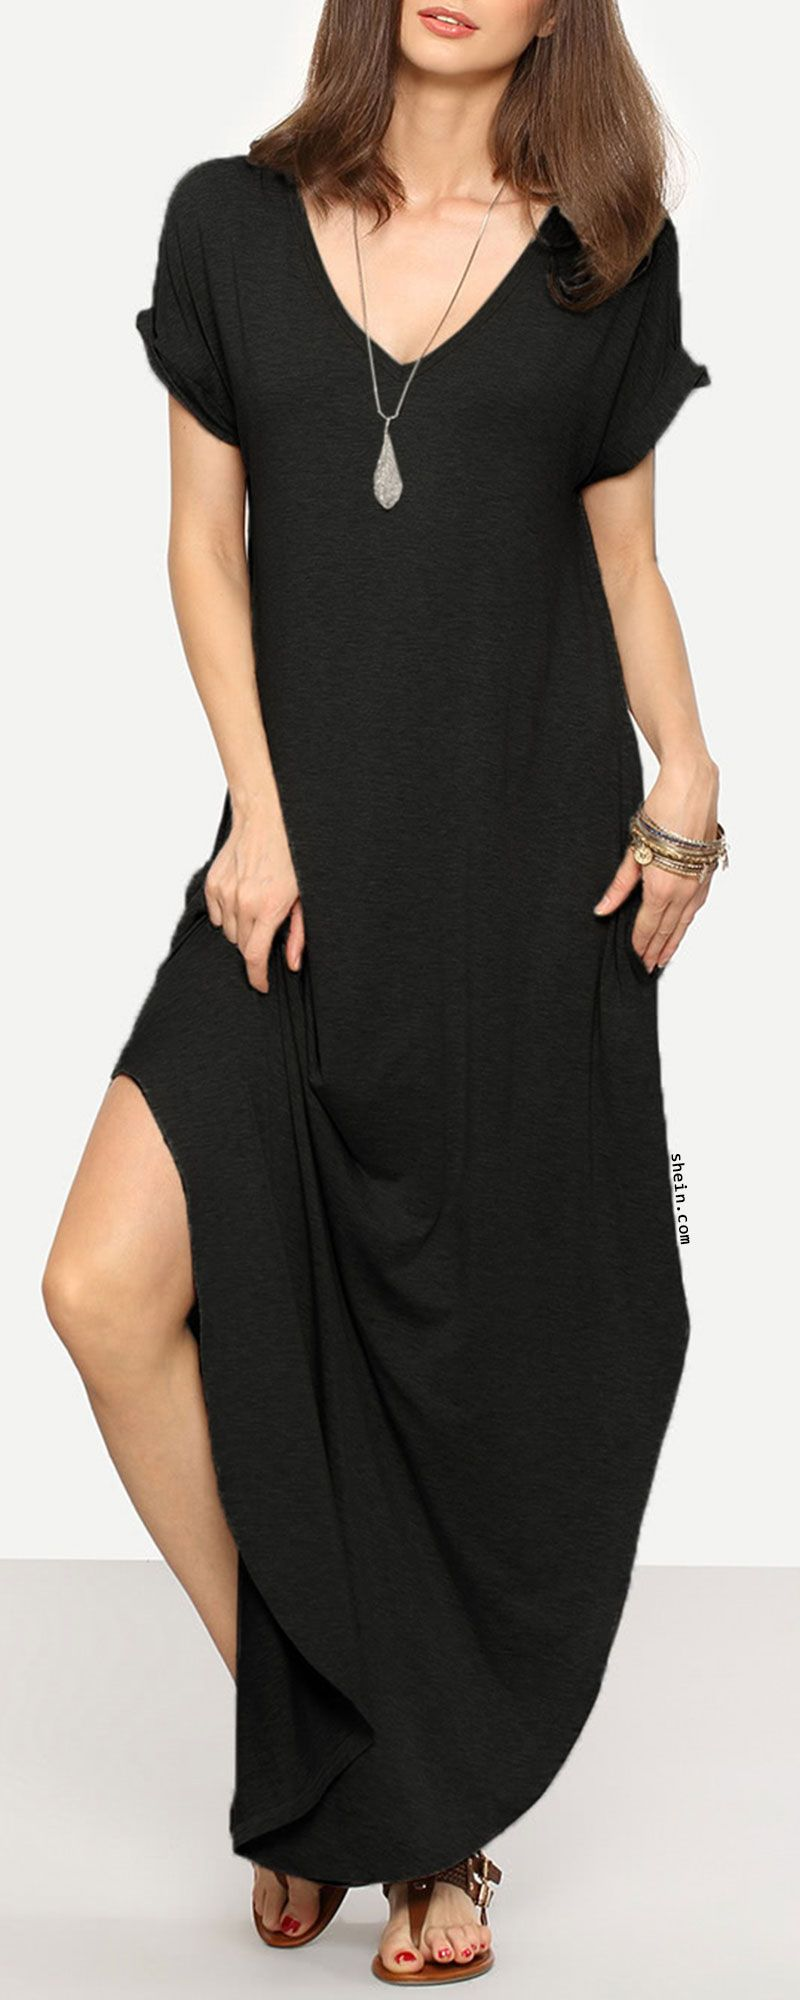 0e5ef8a168 Rolled-cuff Pockets Side Split Curved Dress. Four colors available ...